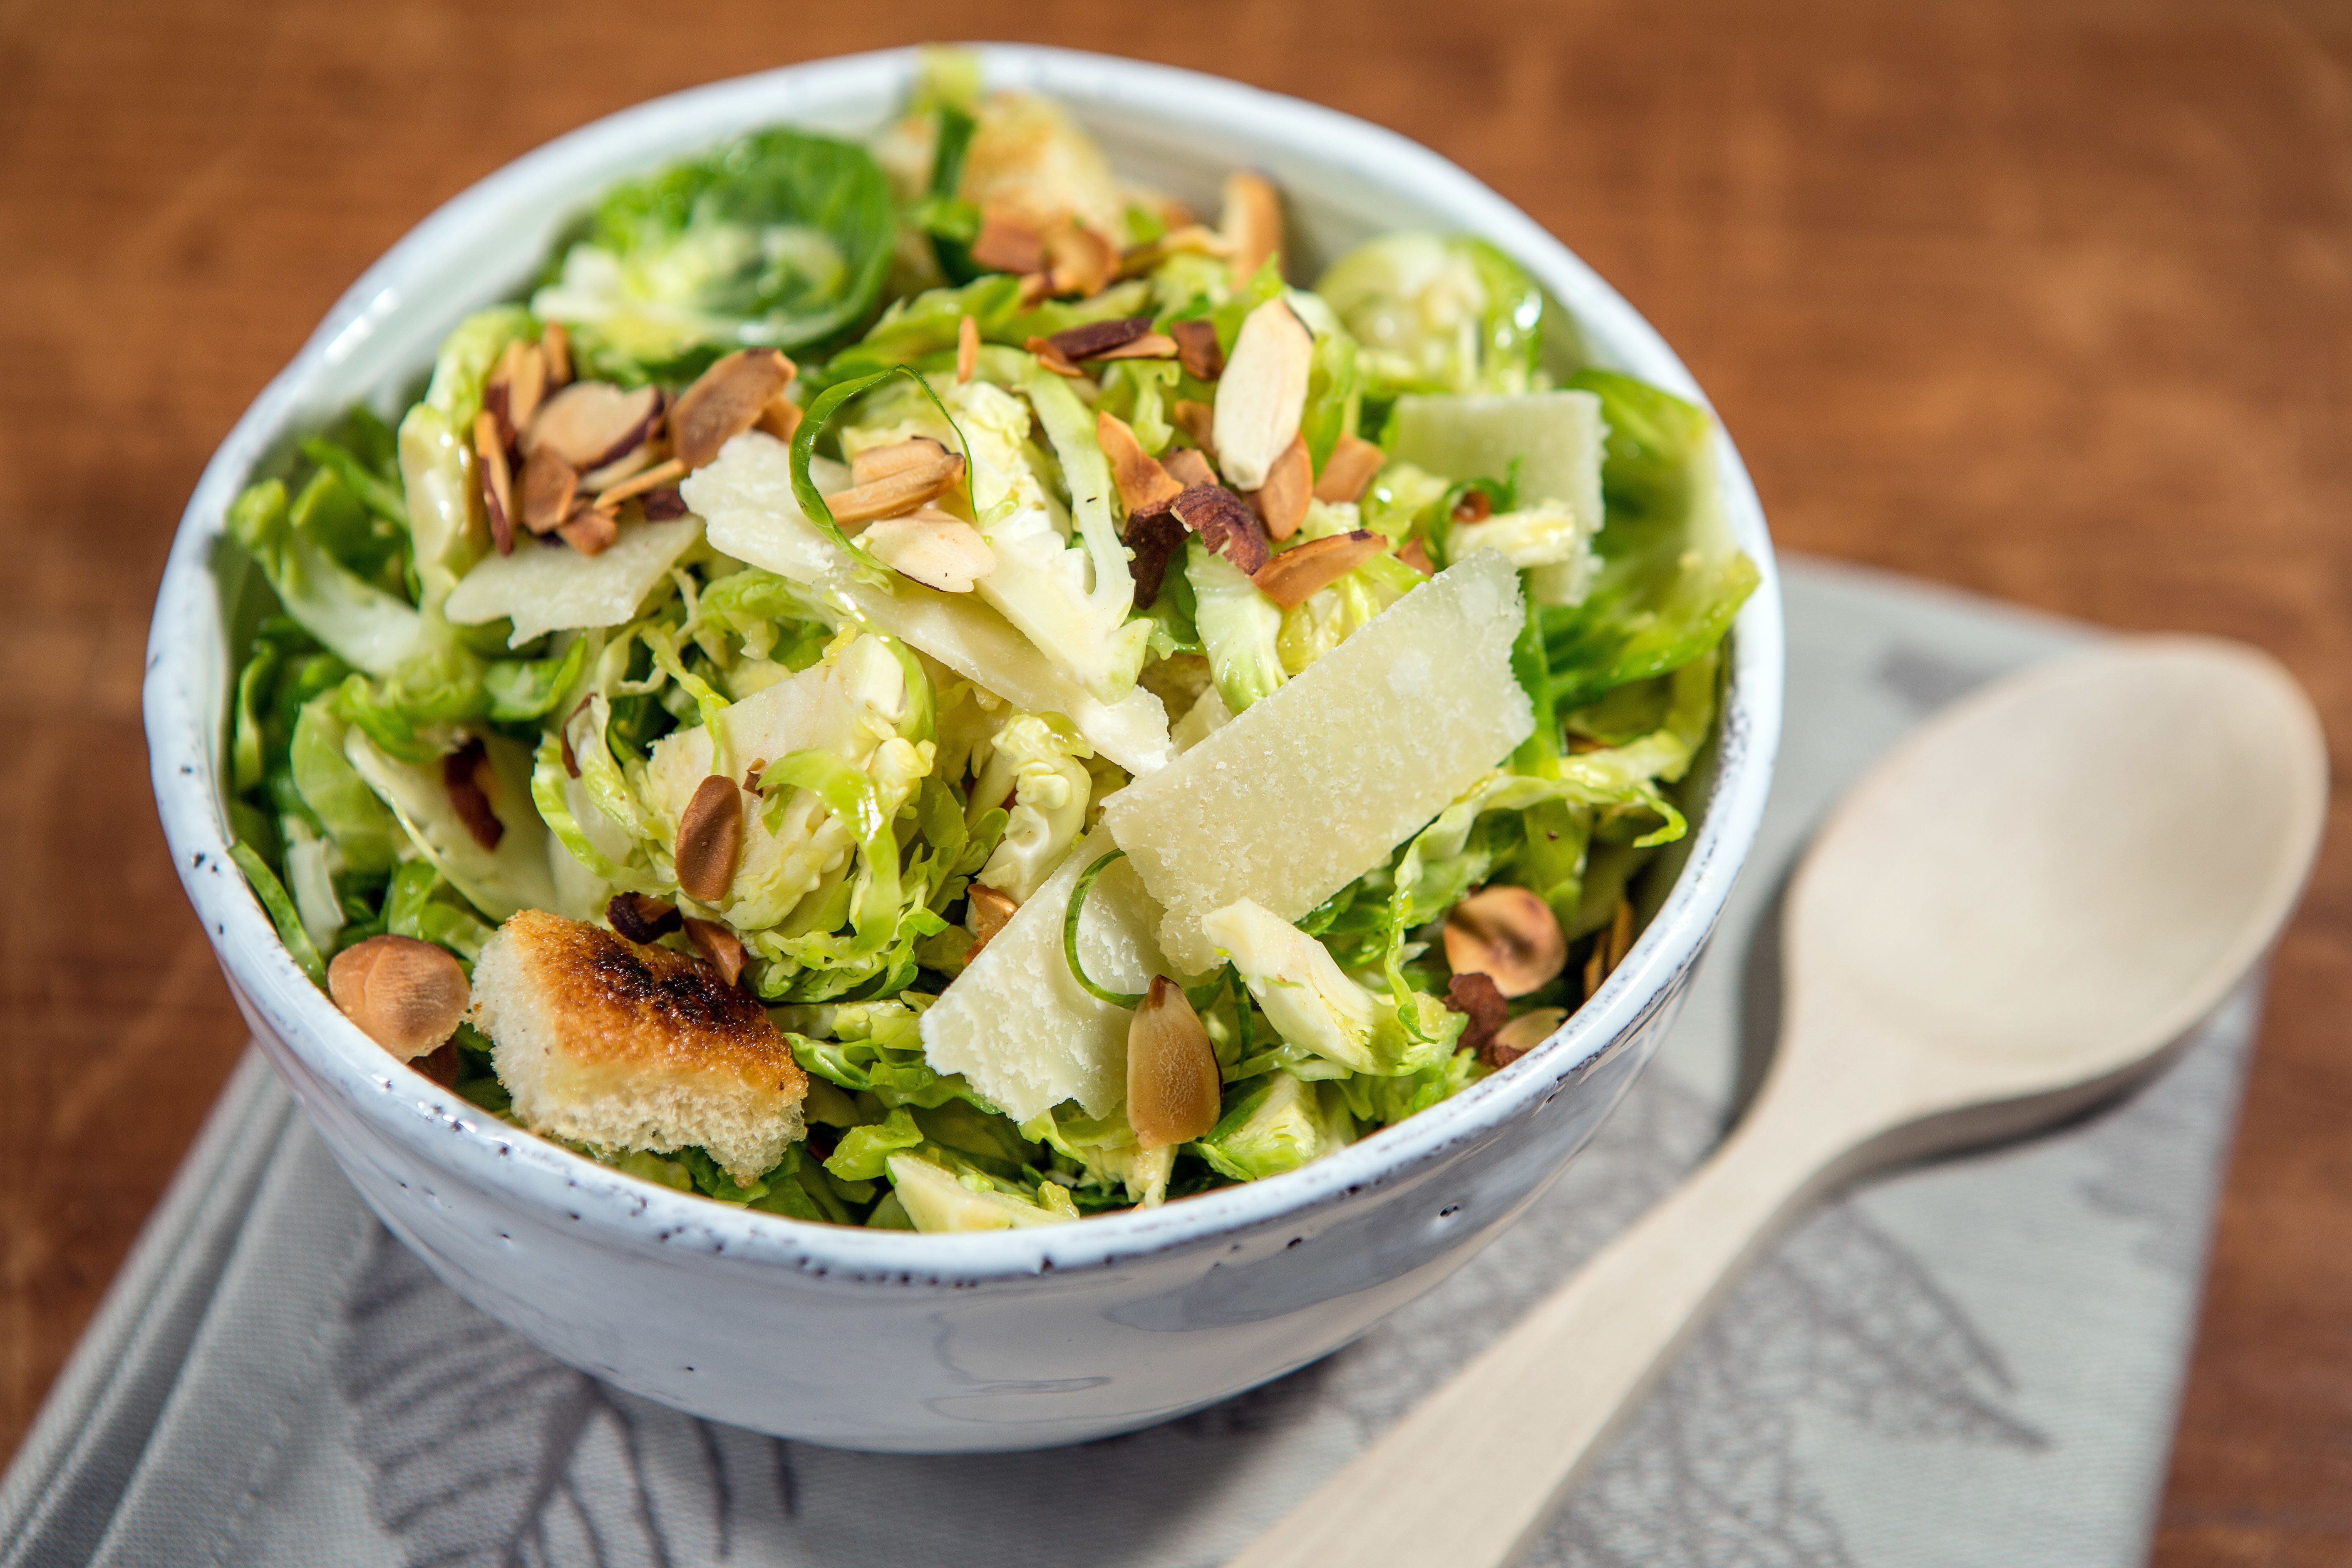 WATERTOWN, MA - NOVEMBER 3: Brussels sprout salad photographed at Sheryl Julian's home in Watertown. Food styling by Sheryl Julian and Valerie Ryan. (Photo by Aram Boghosian for The Boston Globe via Getty Images)